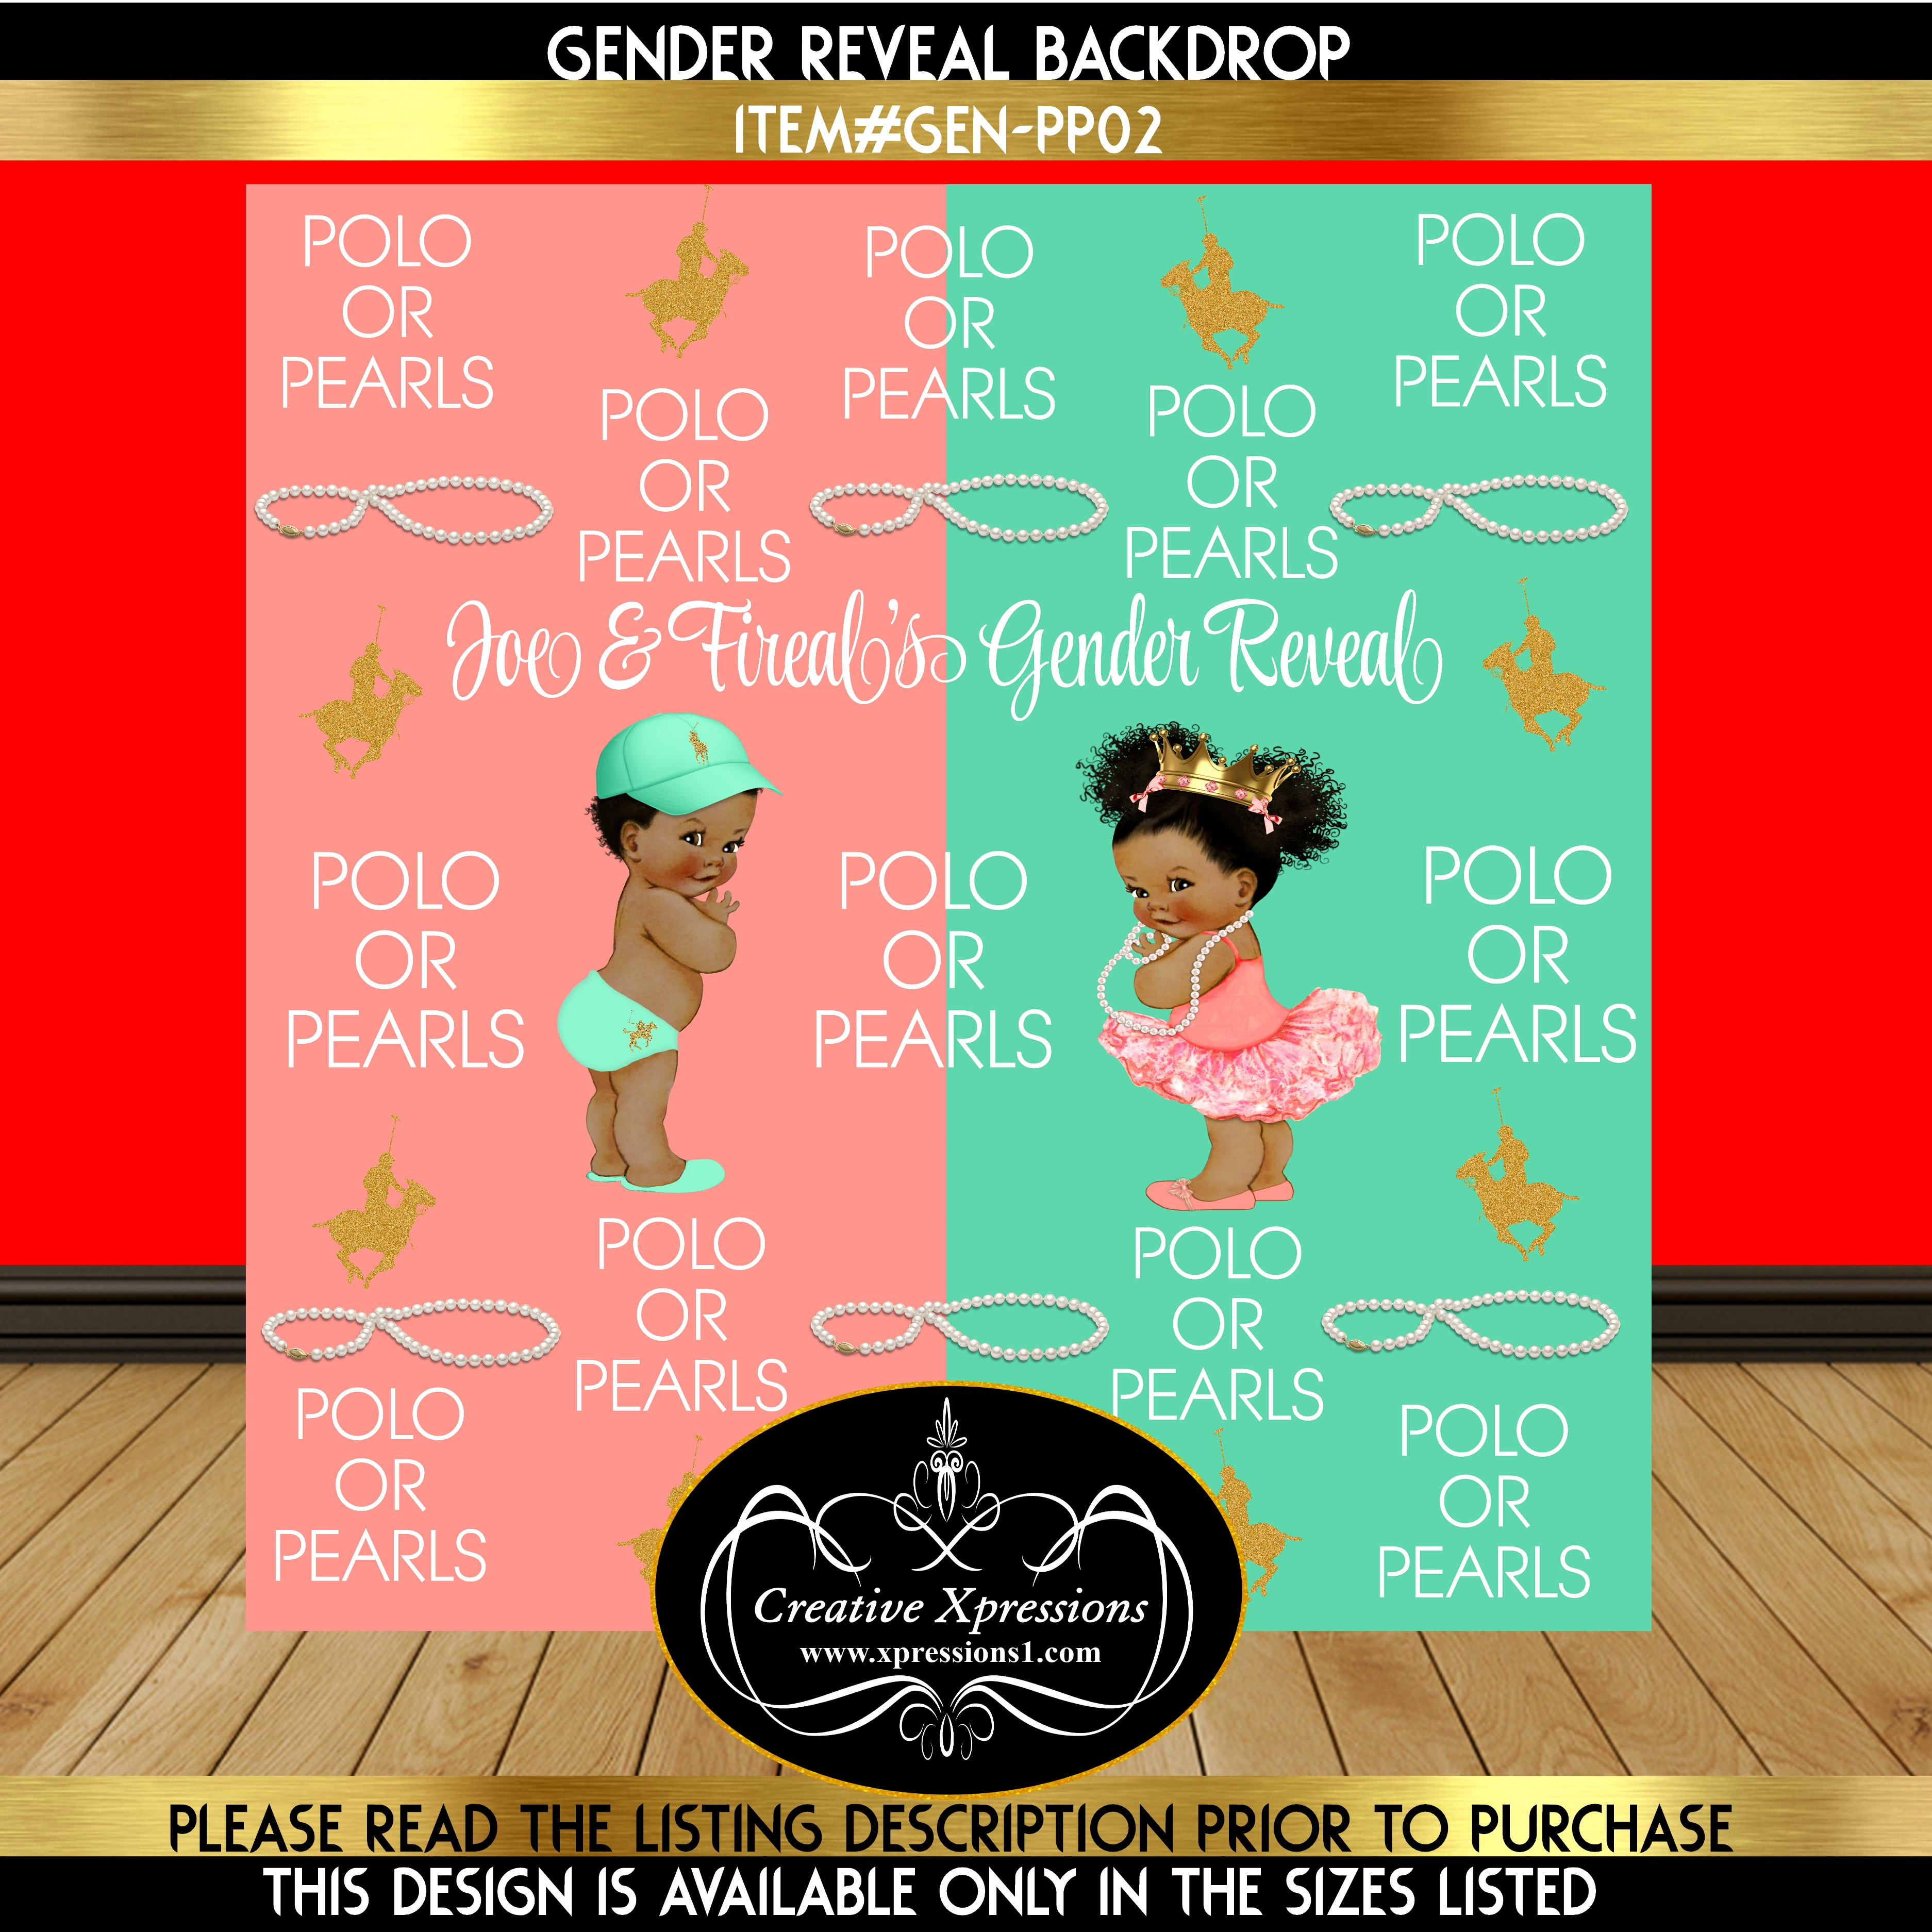 Coral or Mint Polo or Pearls Gender Reveal Backdrop